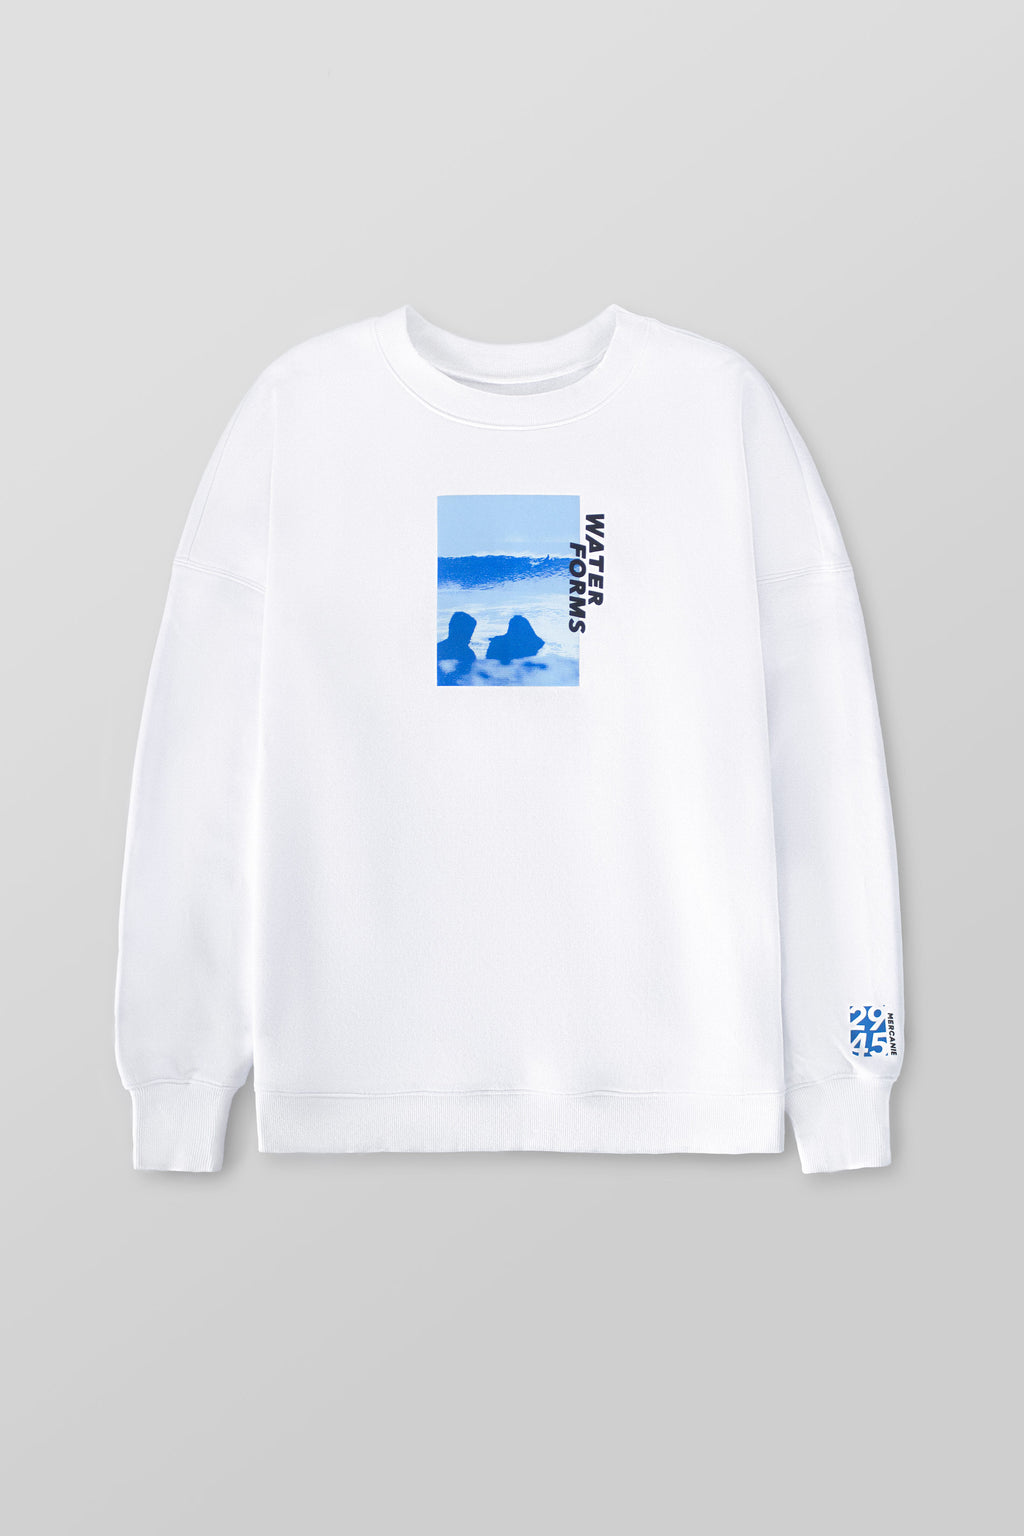 'Together by the sea' Sweatshirt (White) - Mercanie